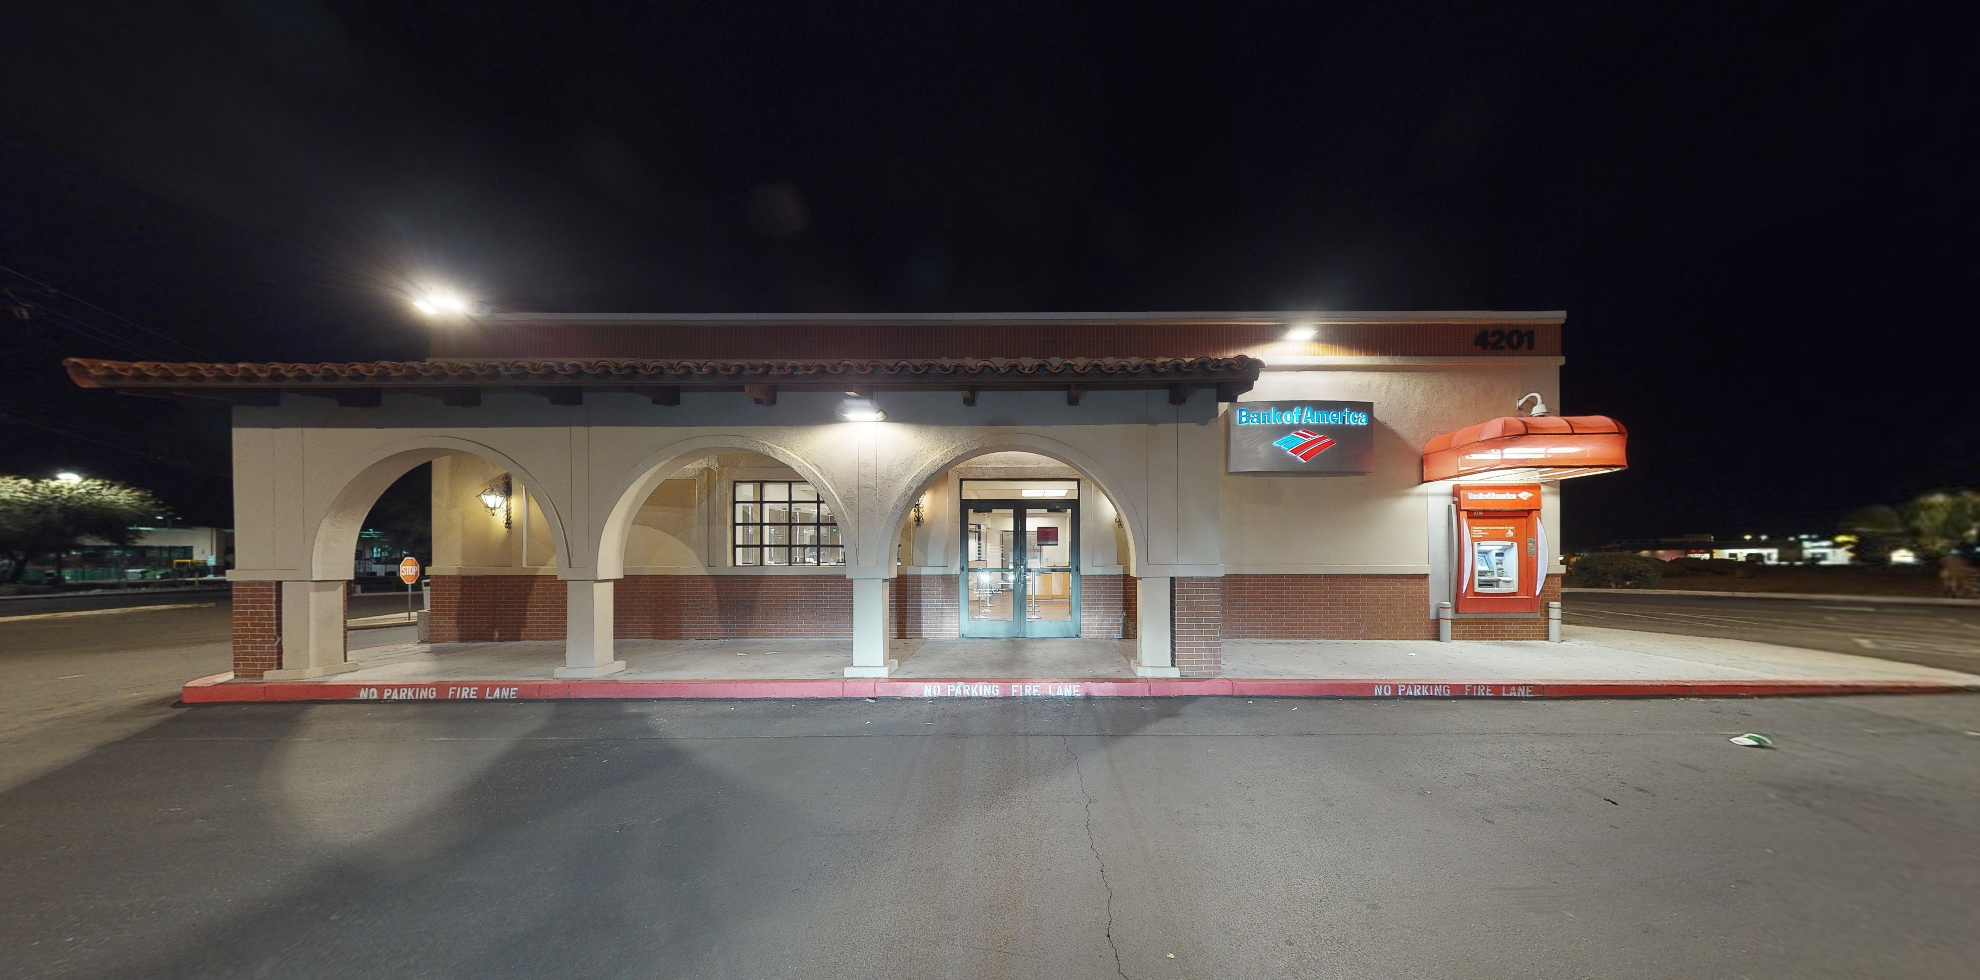 Bank of America financial center with drive-thru ATM   4201 N Oracle Rd, Tucson, AZ 85705